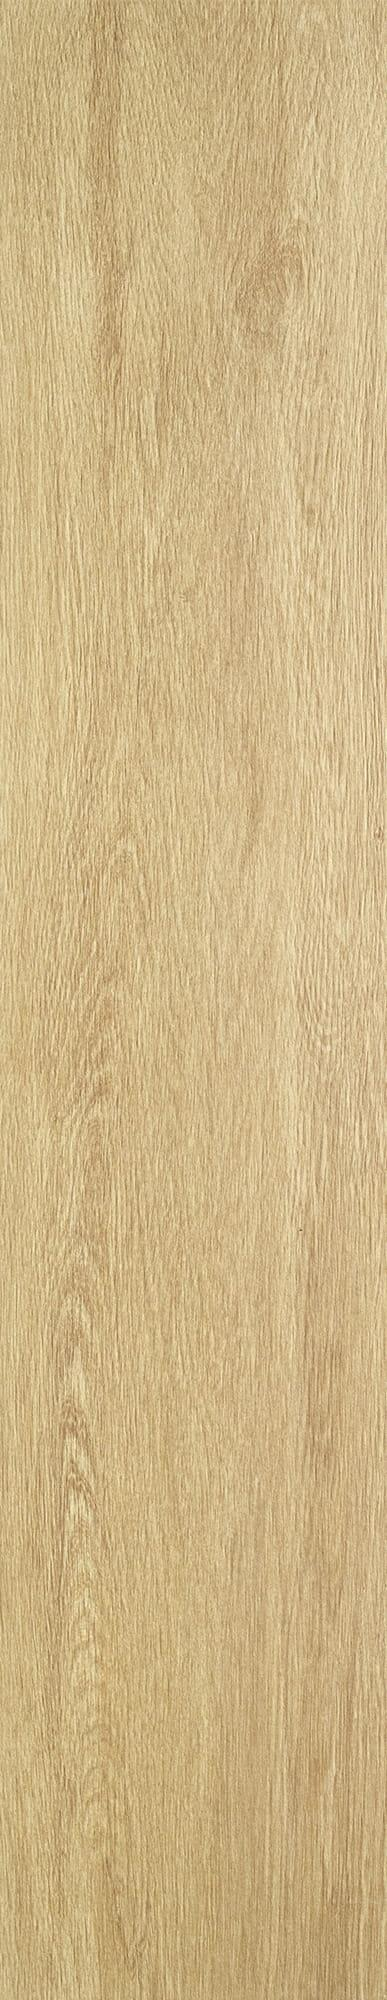 Timber Light Beige